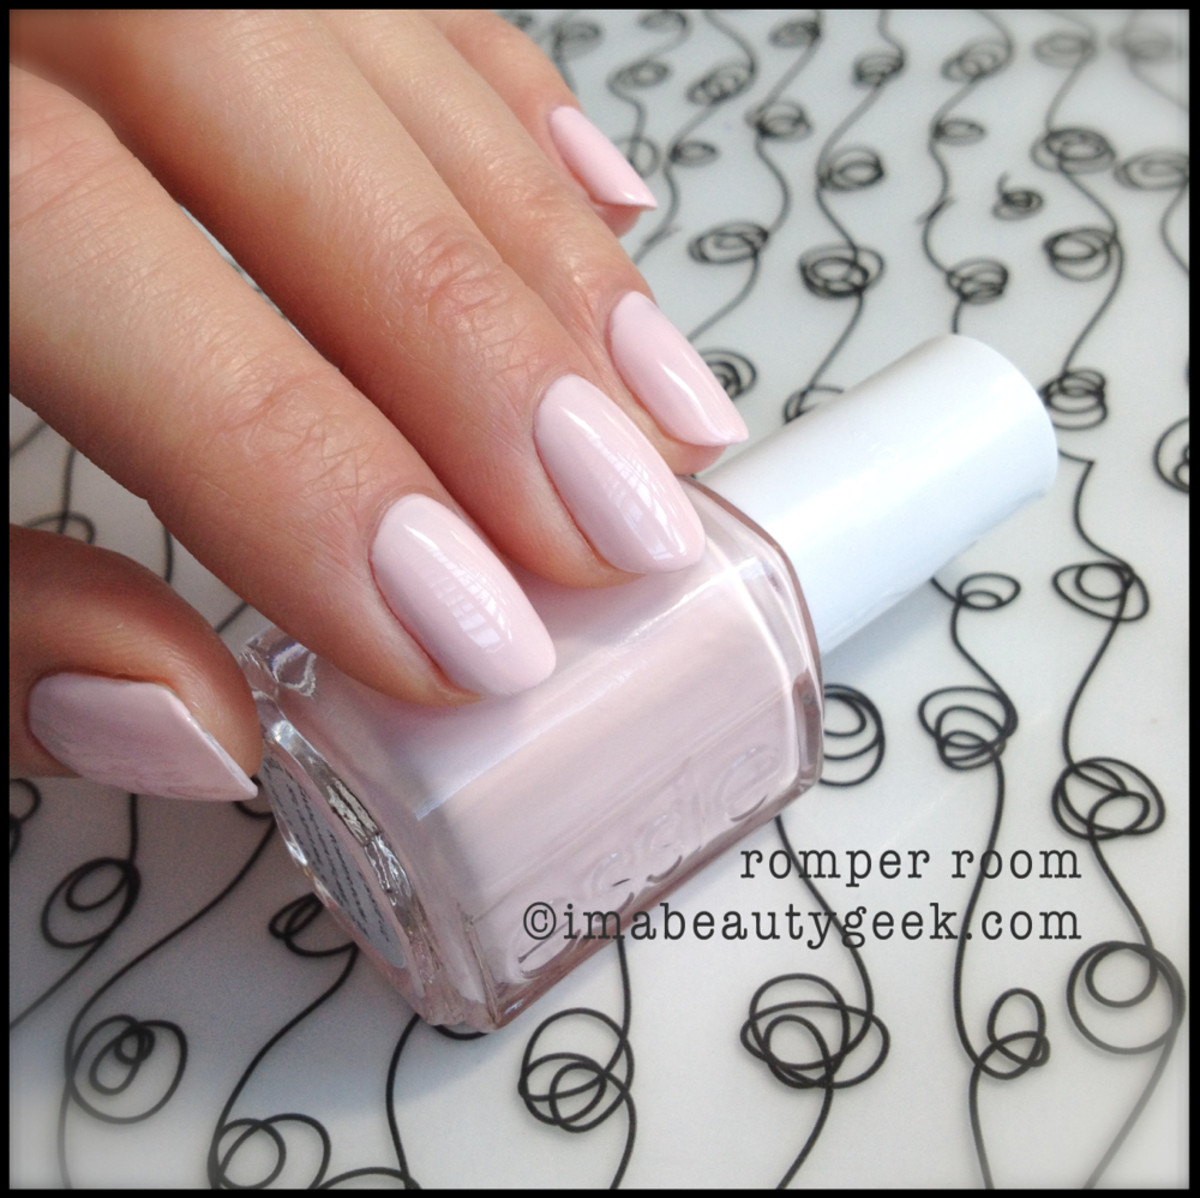 Essie Romper Room Hide Go Chic 2014